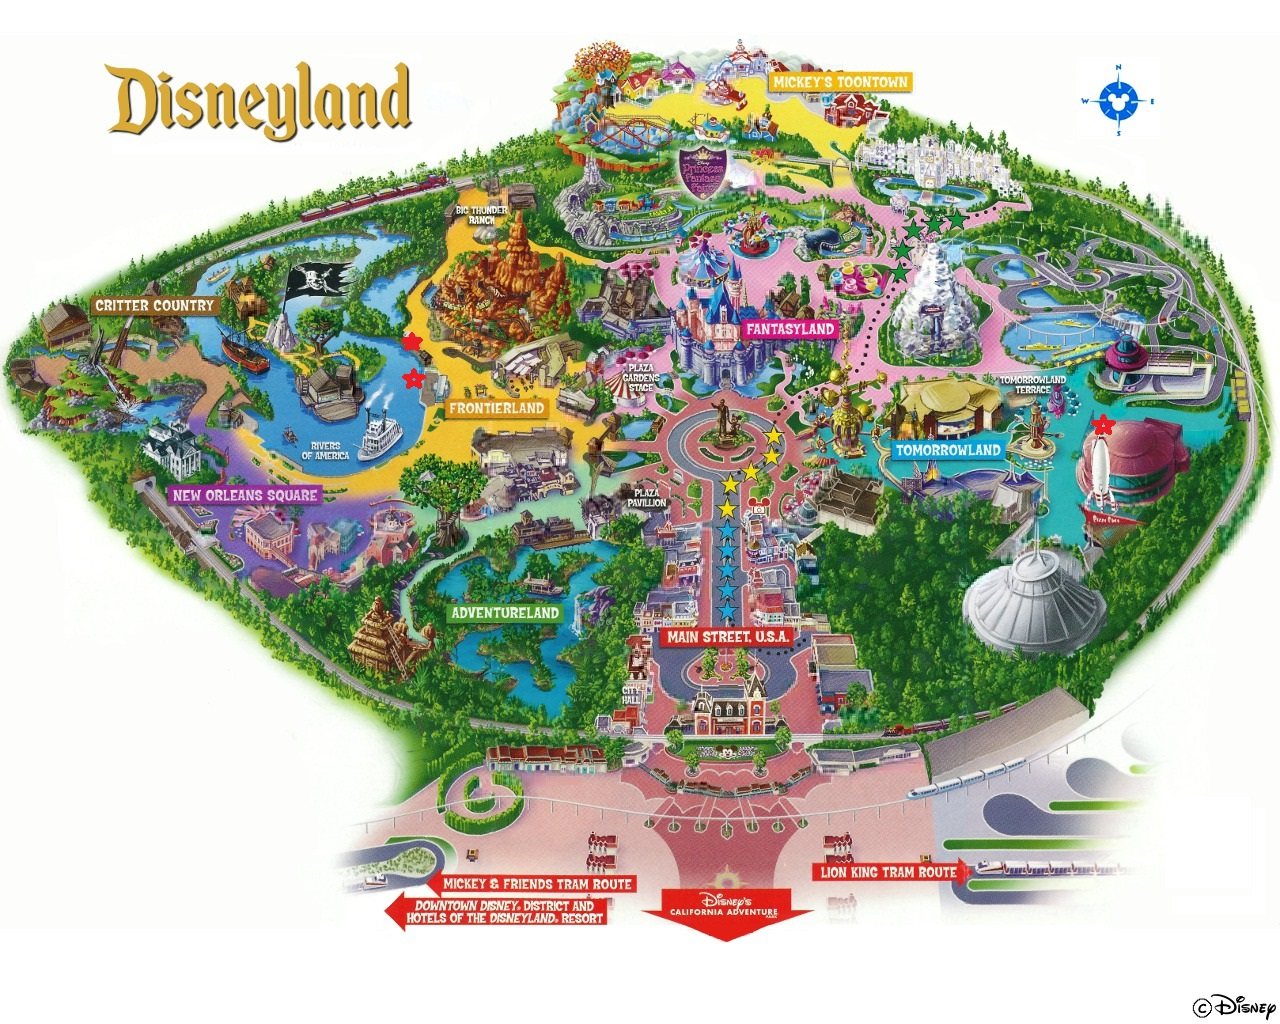 Map of quiet places at Disneyland